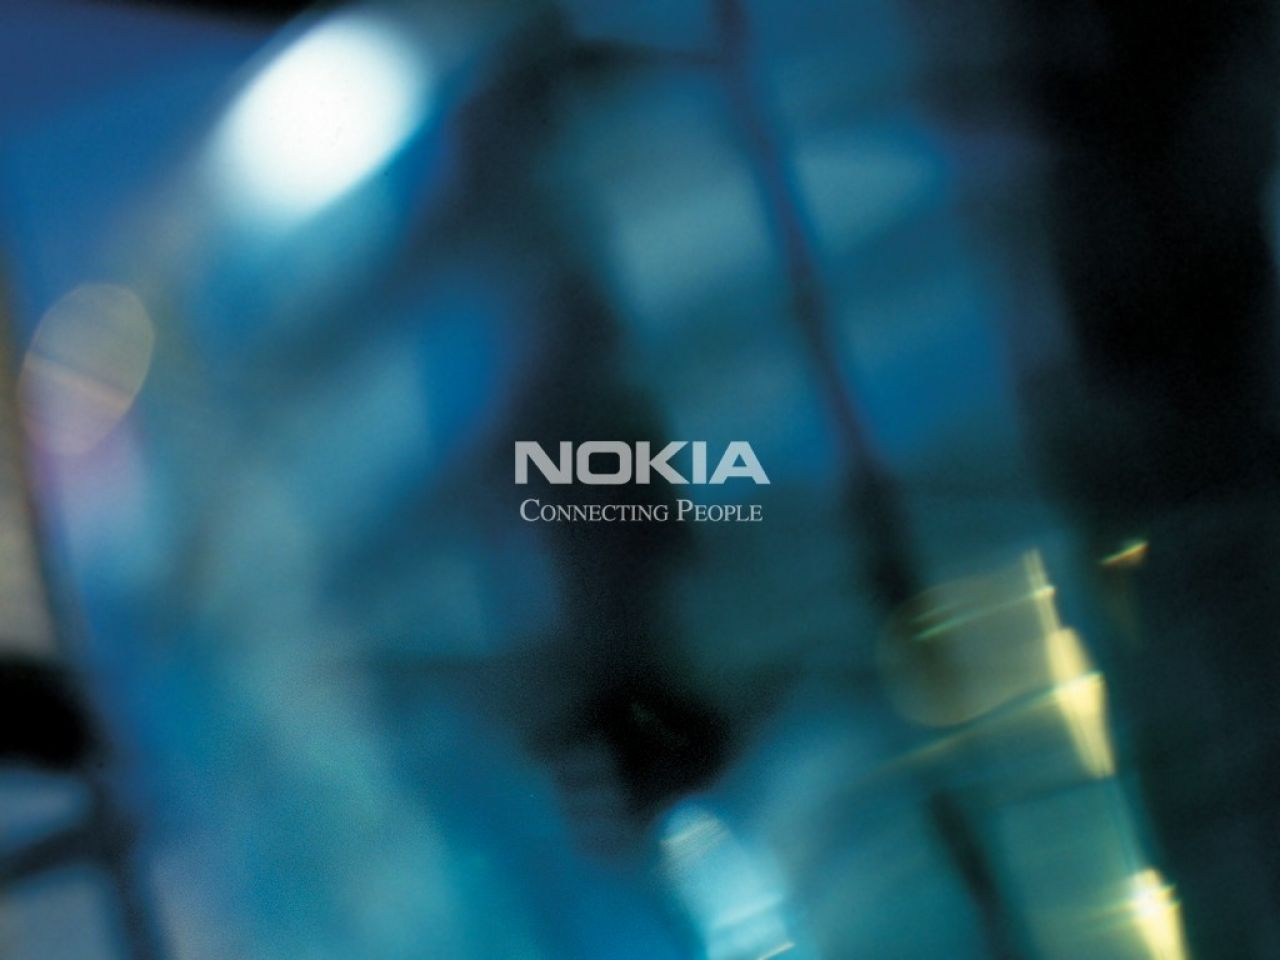 Cool Nokia Wallpapers: Nokia Mobile Phone Wallpaper